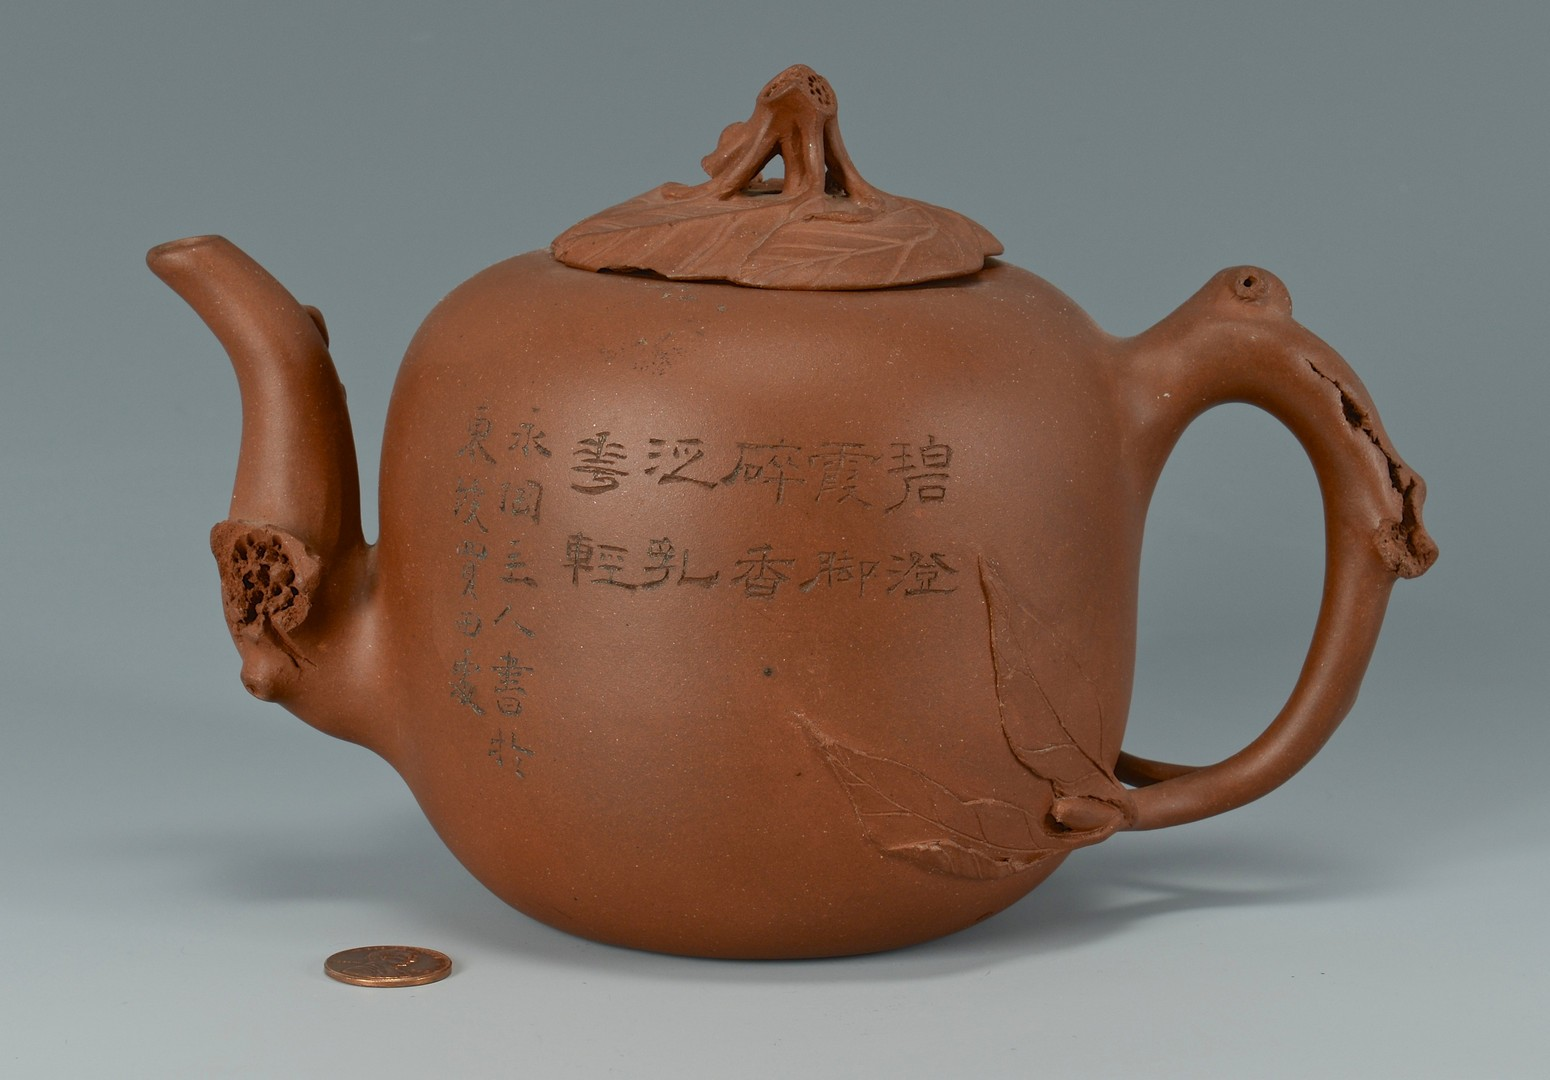 Lot 3383225: Chinese Yixing Teapot, signed